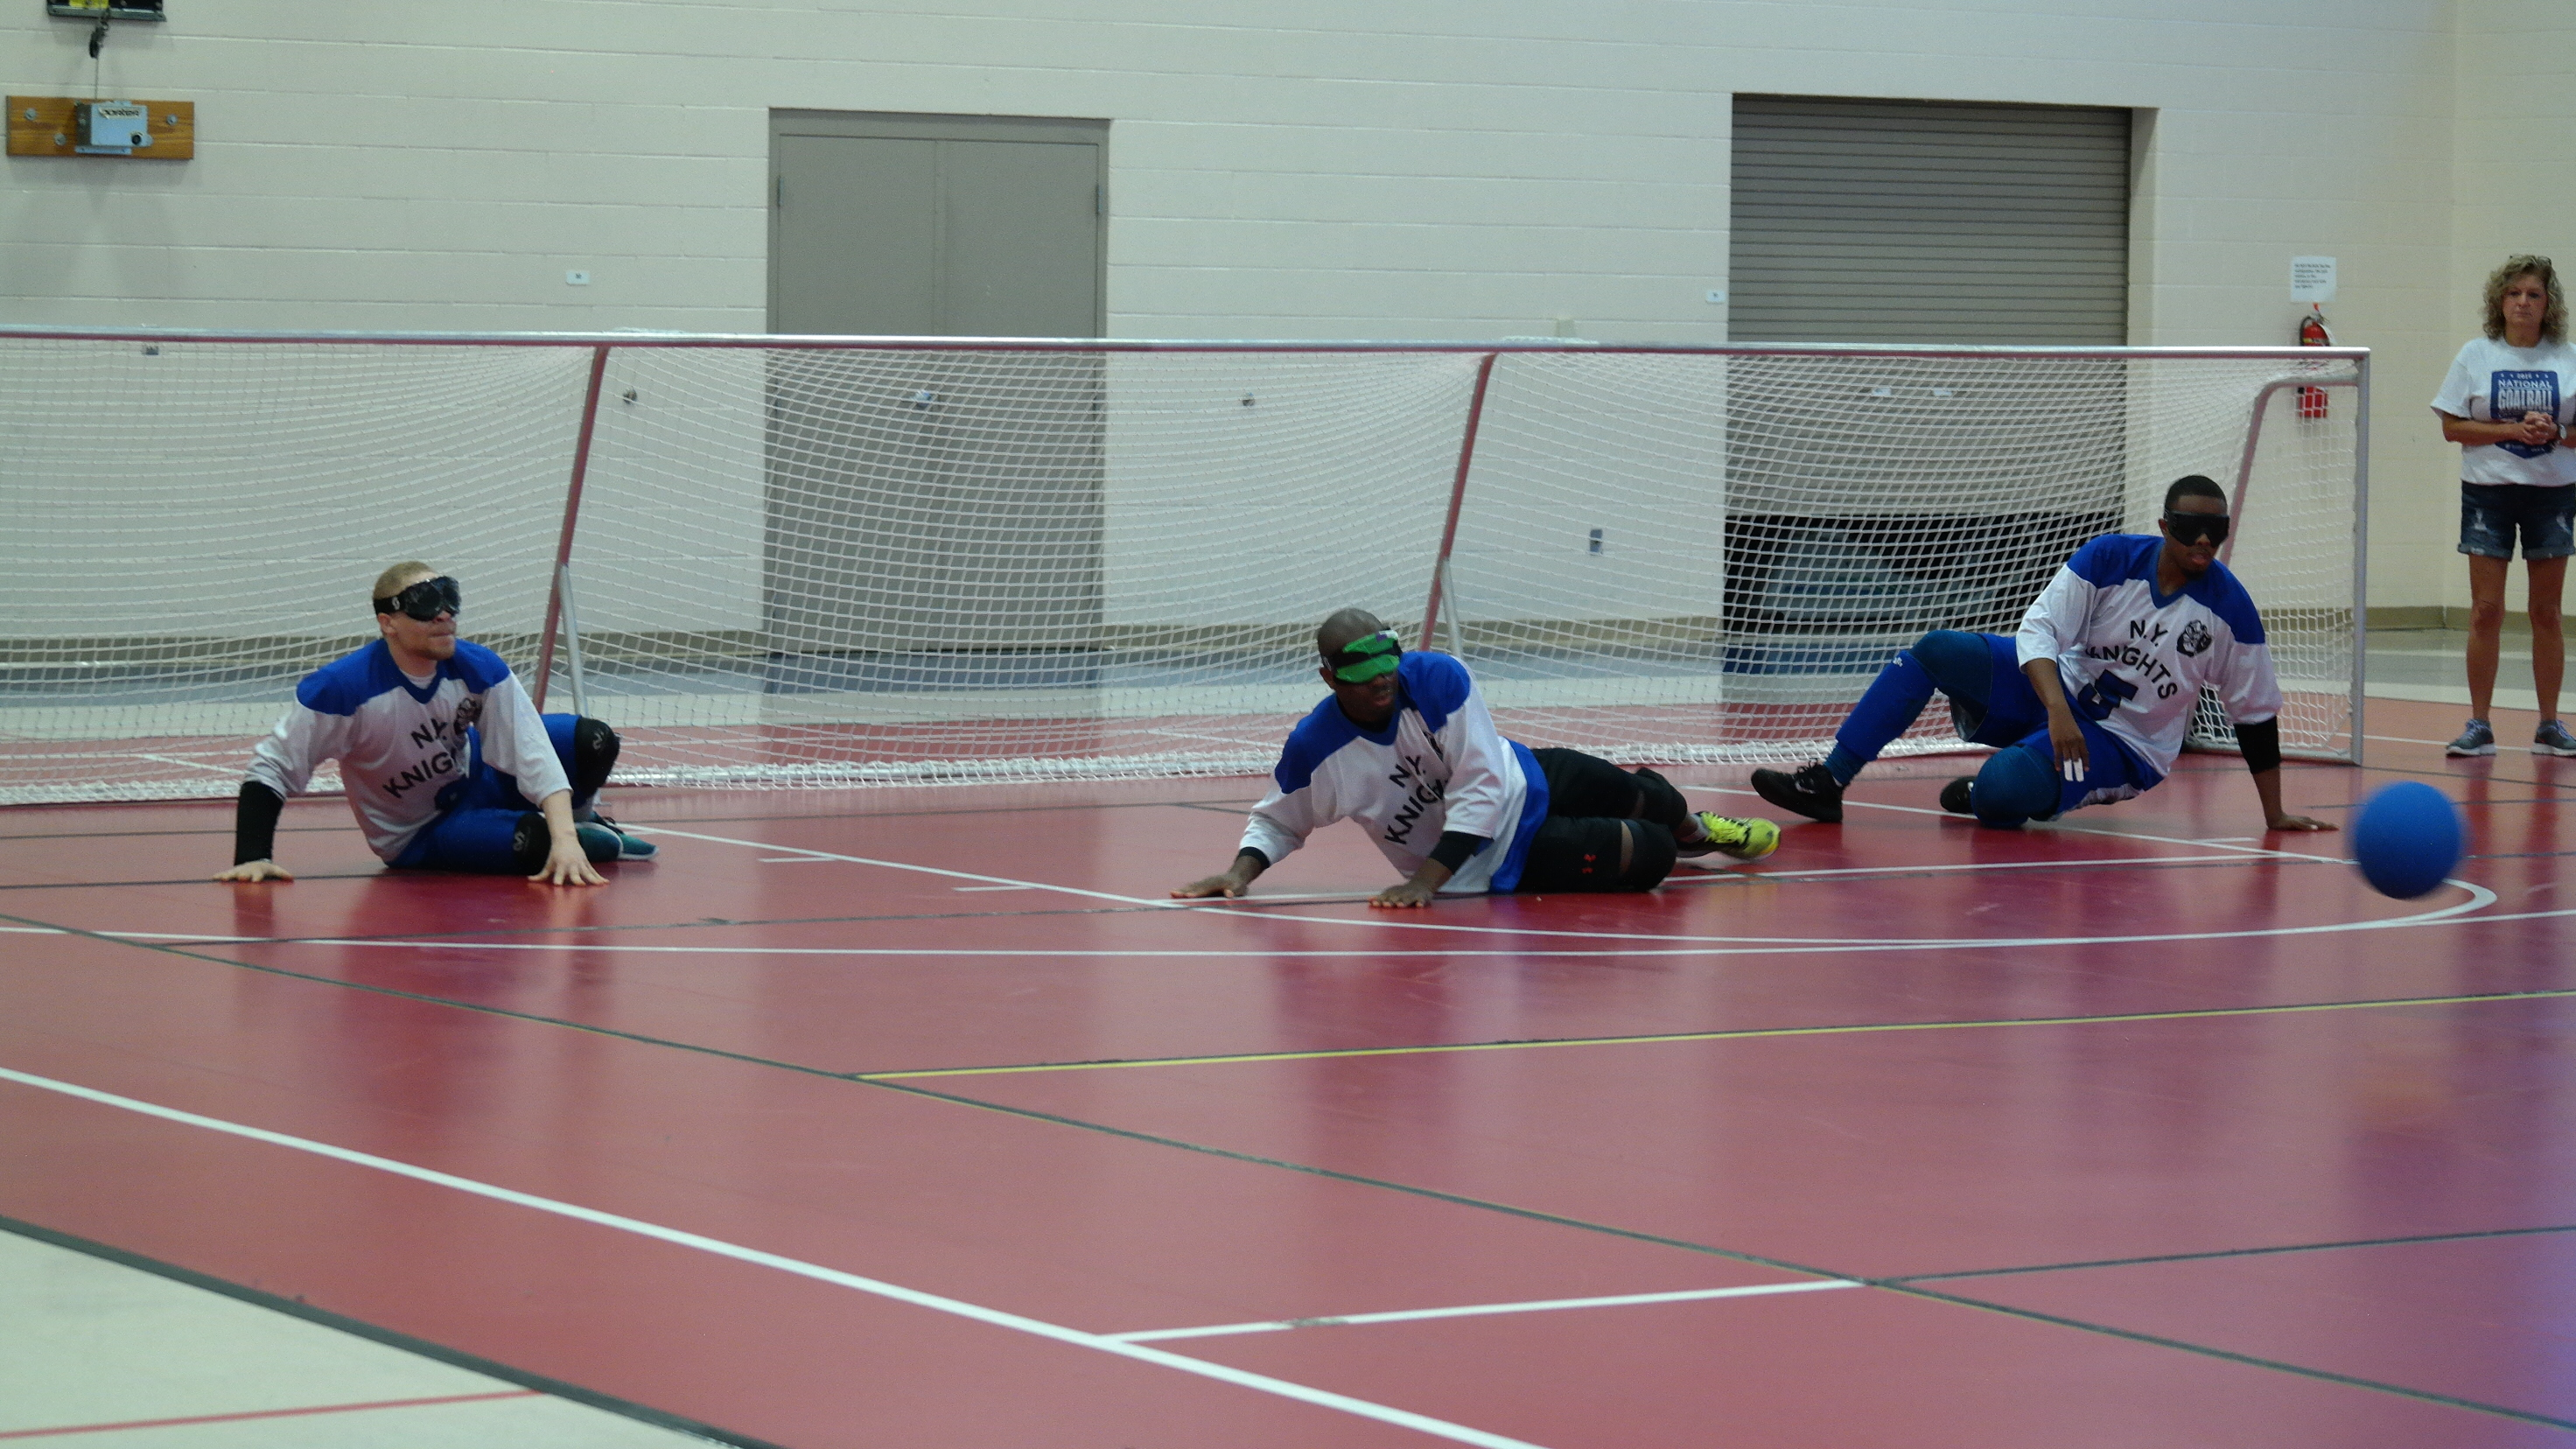 Teams compete in the Goalball National Championship at Turnstone's Plassman Athletic Center on Saturday.